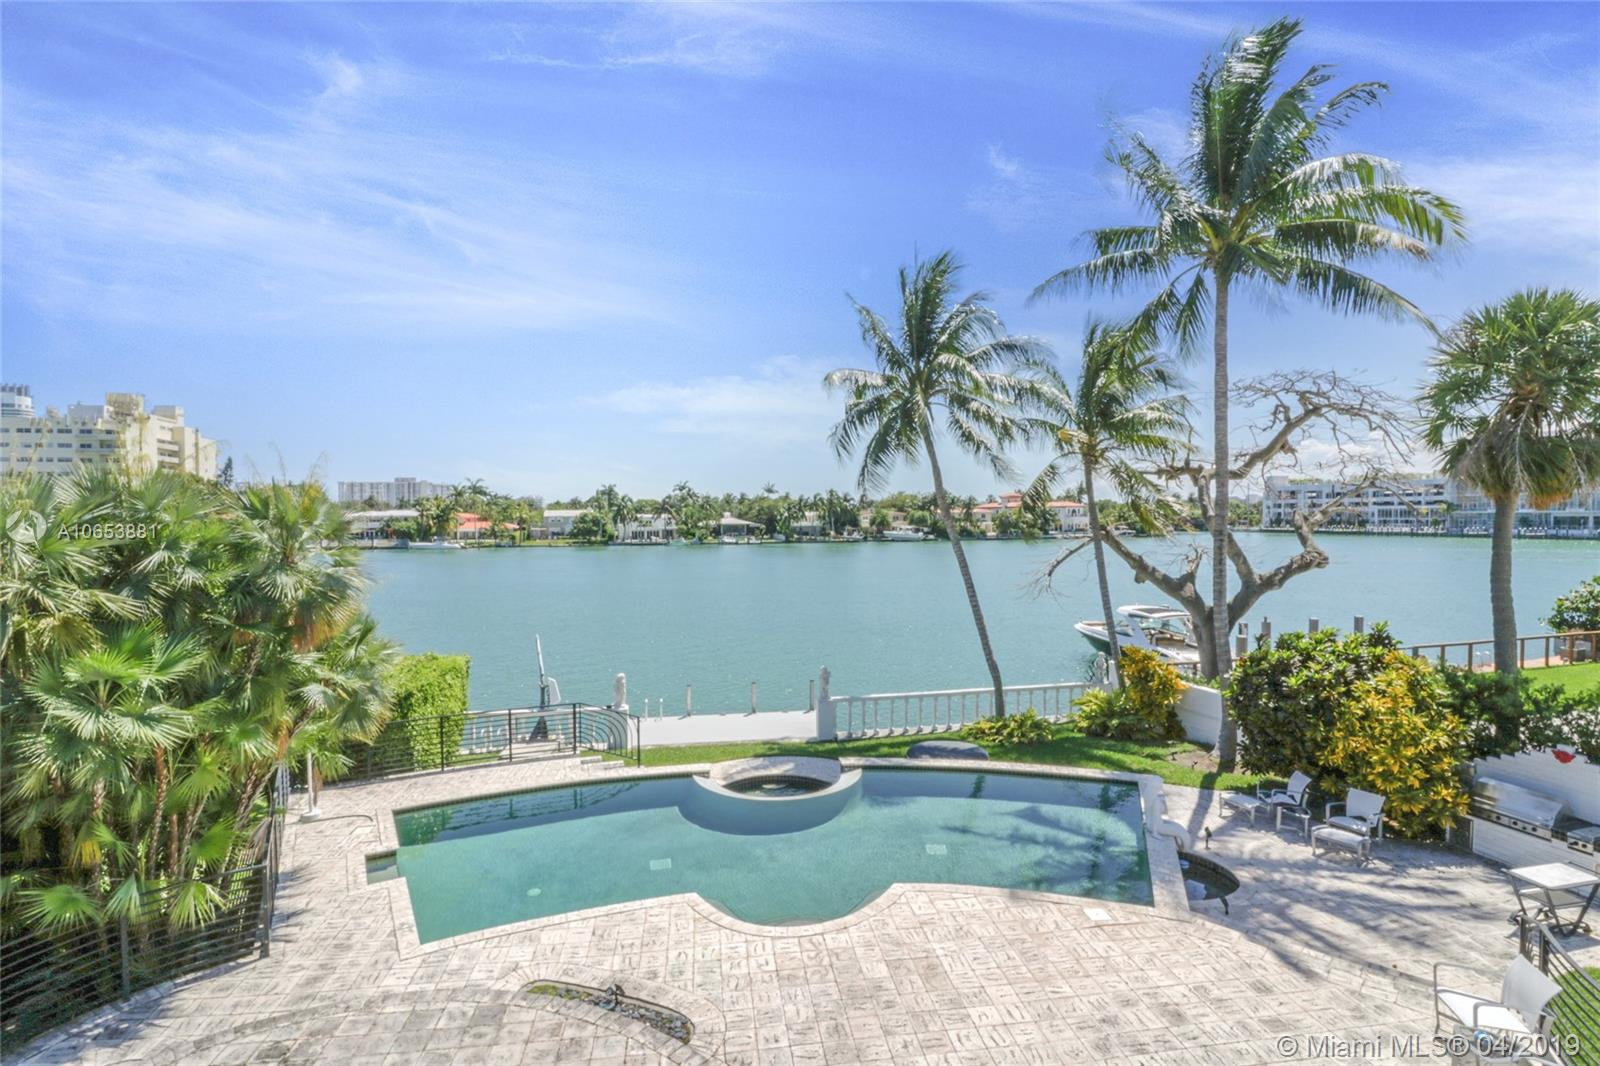 Miami Beach Homes For Sale